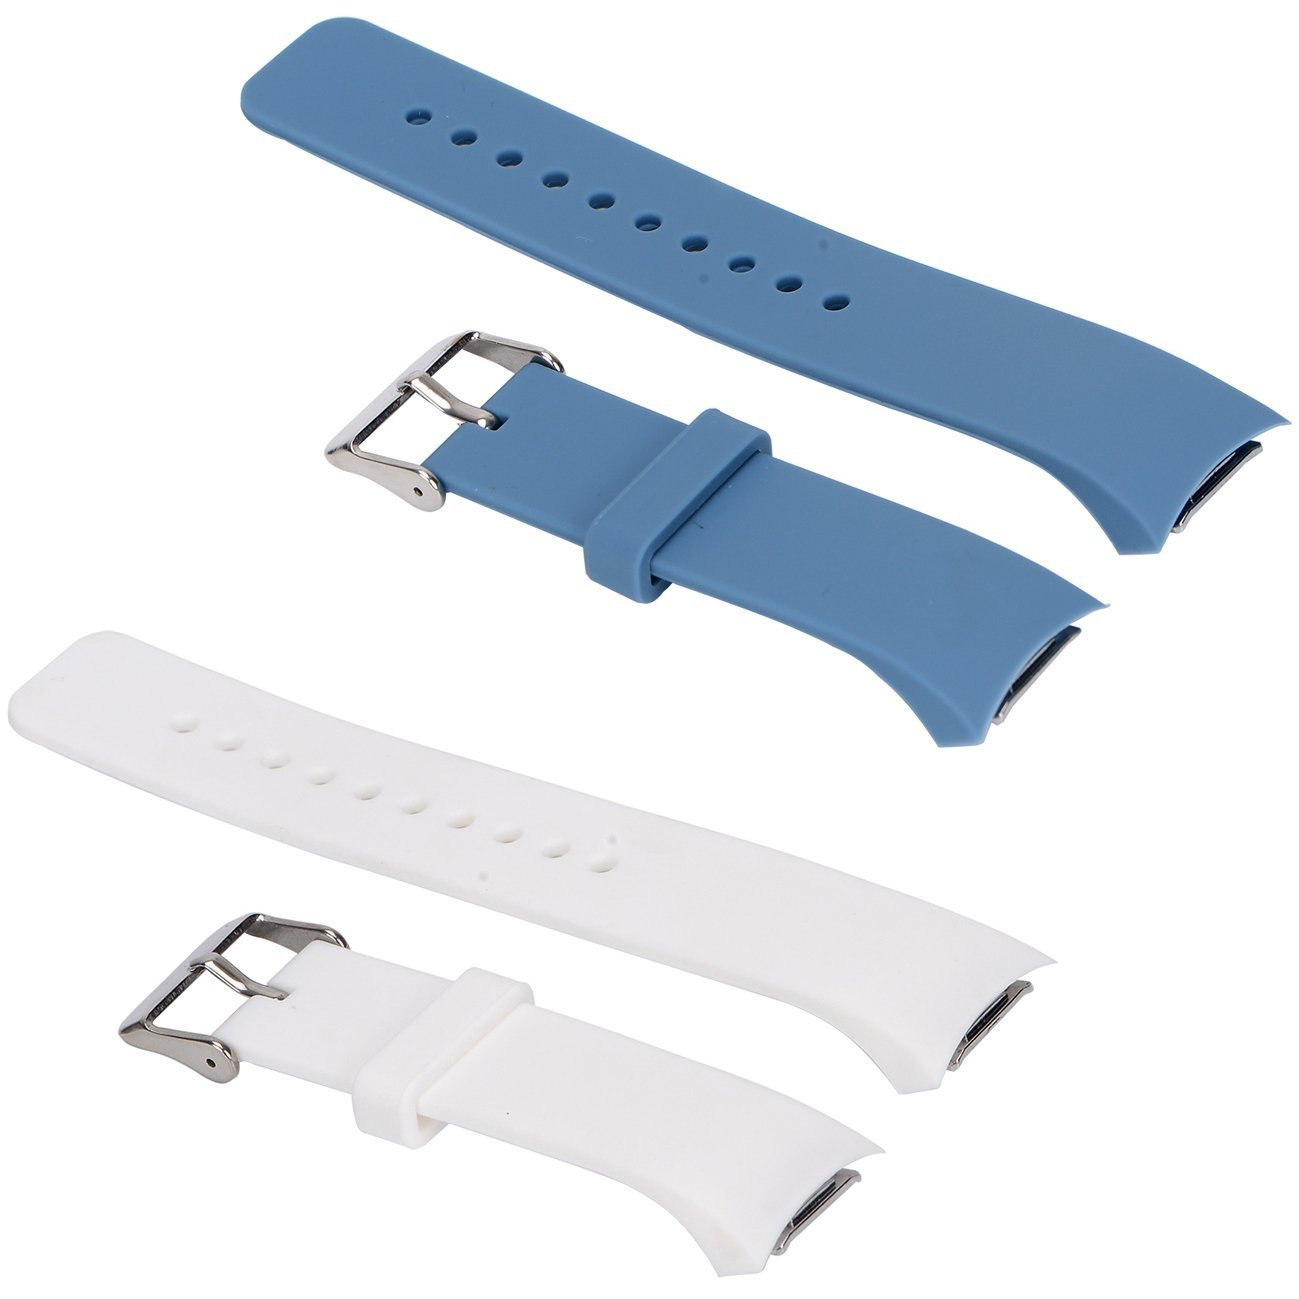 2pcs Small Bands for Gear Fit2 Pro Watch, Replacement Soft Silicone Bands Straps for Samsung Gear Fit2 Pro Smart Fitness Band and Samsung Gear Fit2 Smartwatch : White+Slate